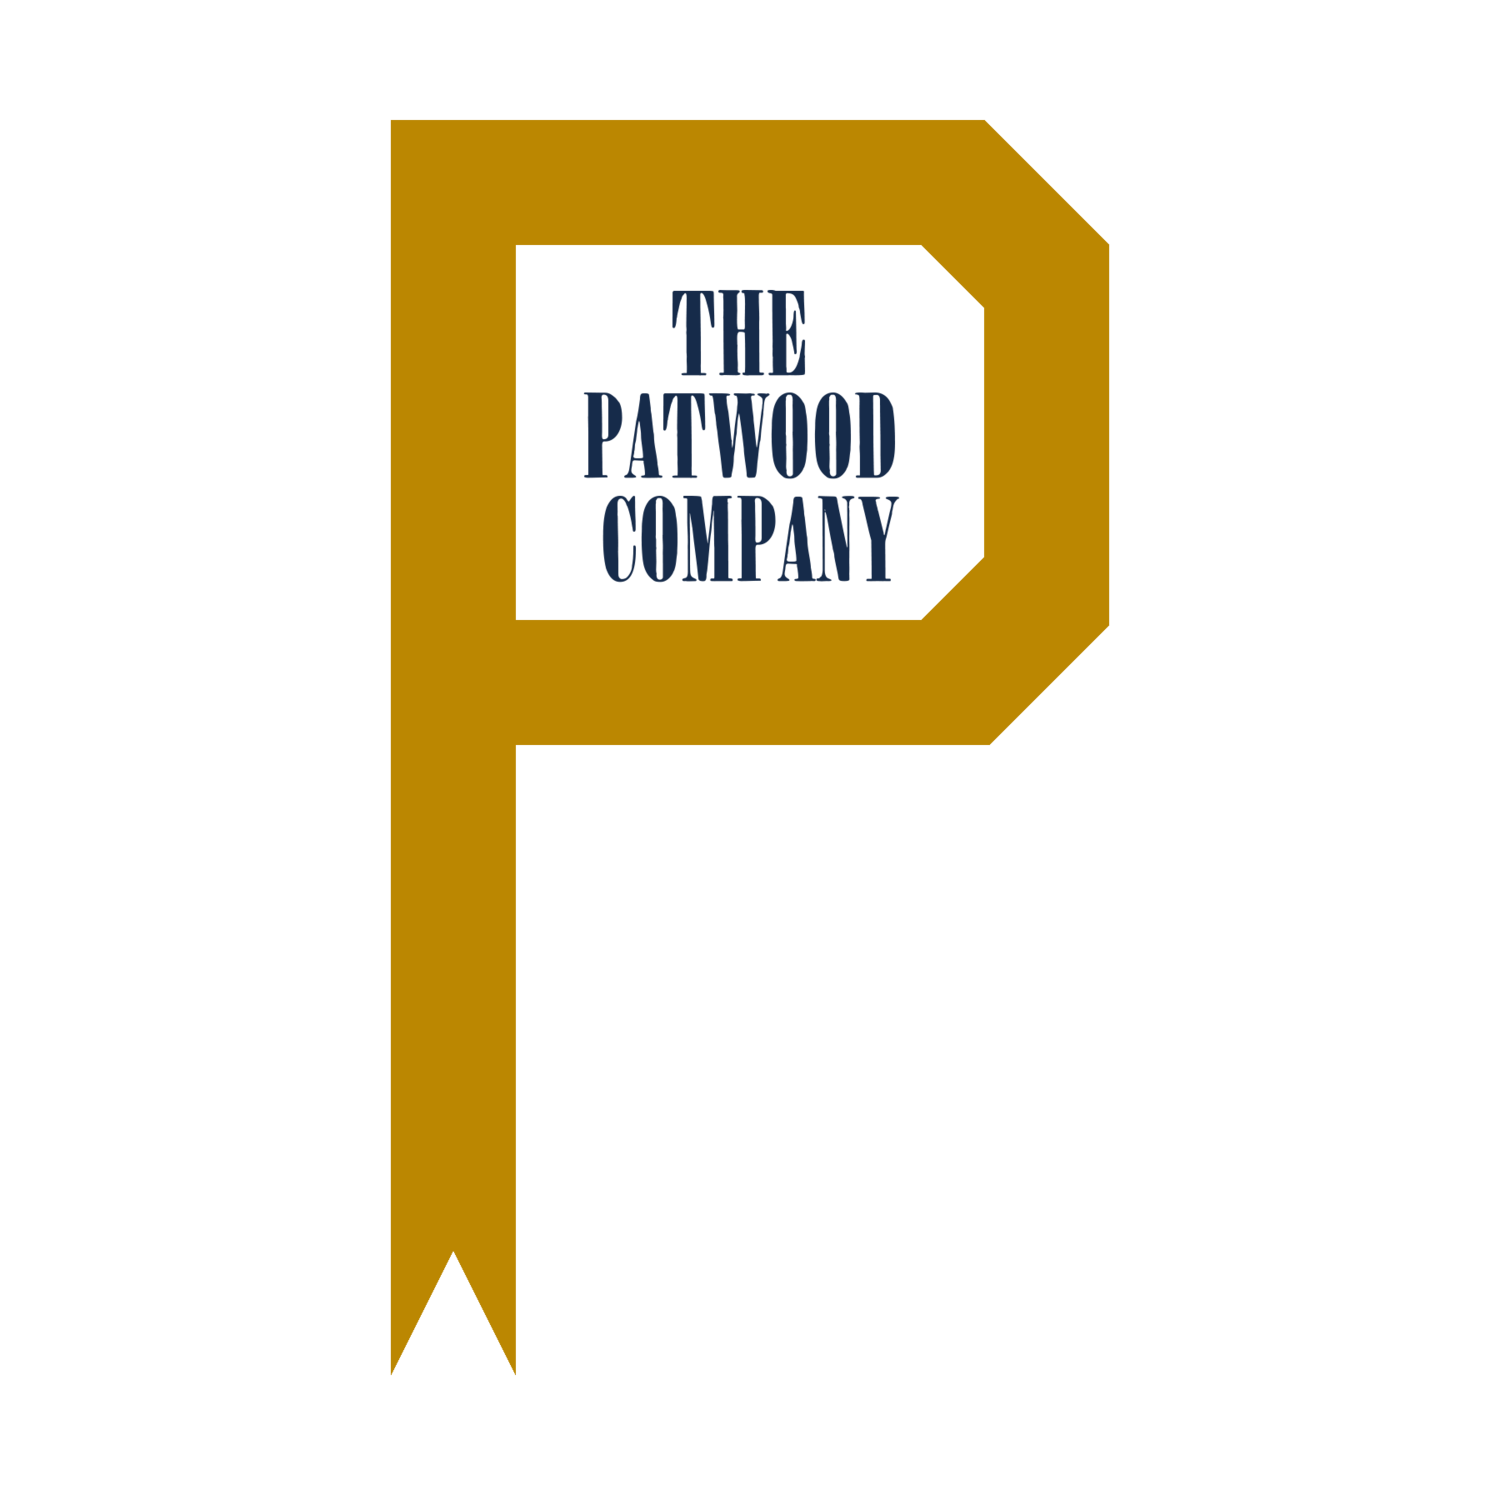 The Patwood Company